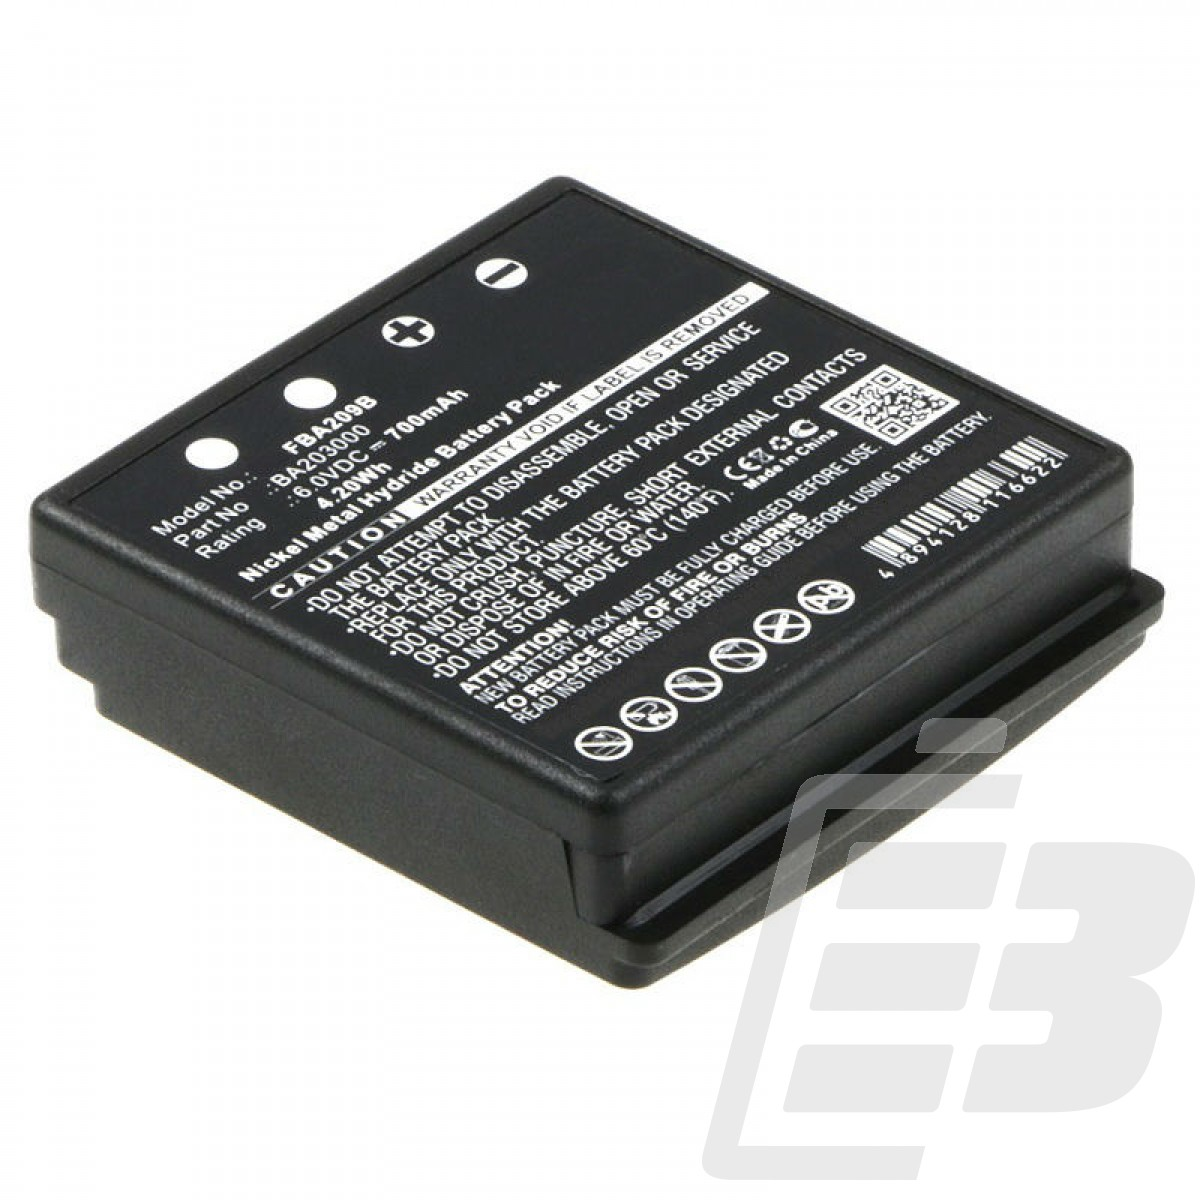 Crane remote control battery HBC Spectrum 1_1